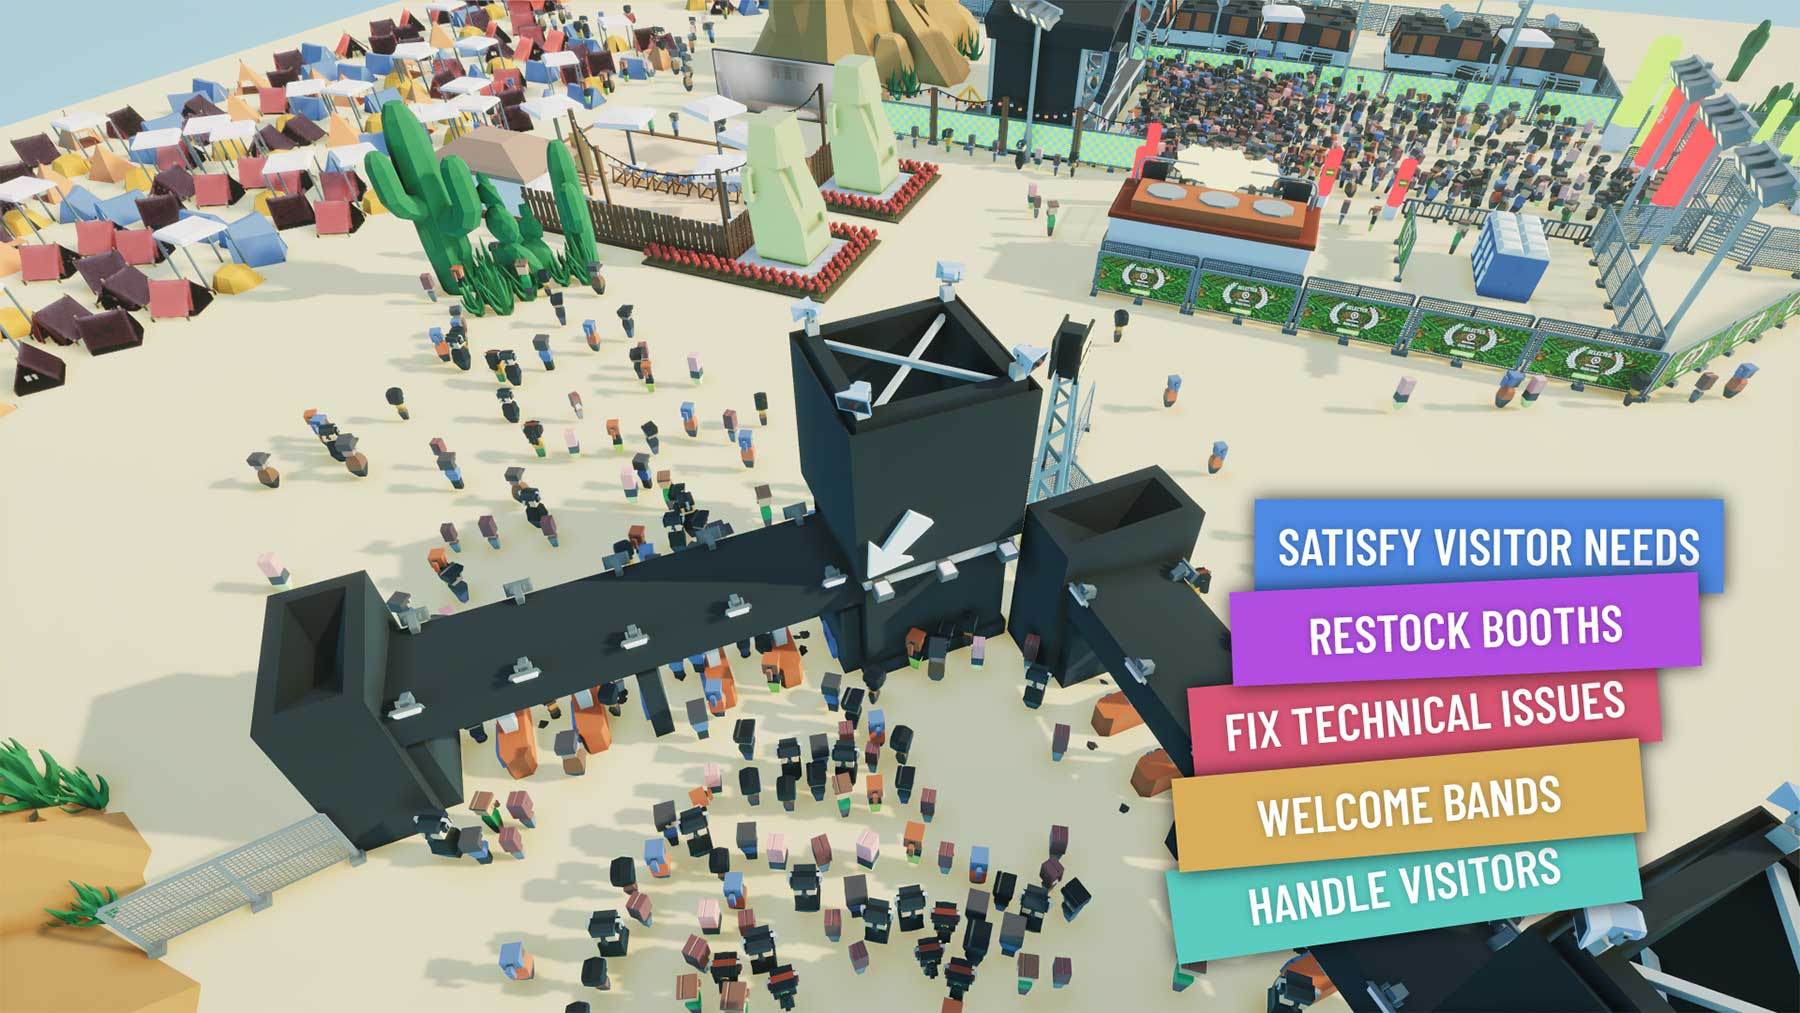 """Review: Aufbau-Simulation """"Festival Tycoon"""" Festival-Tycoon-early-access-test_01"""